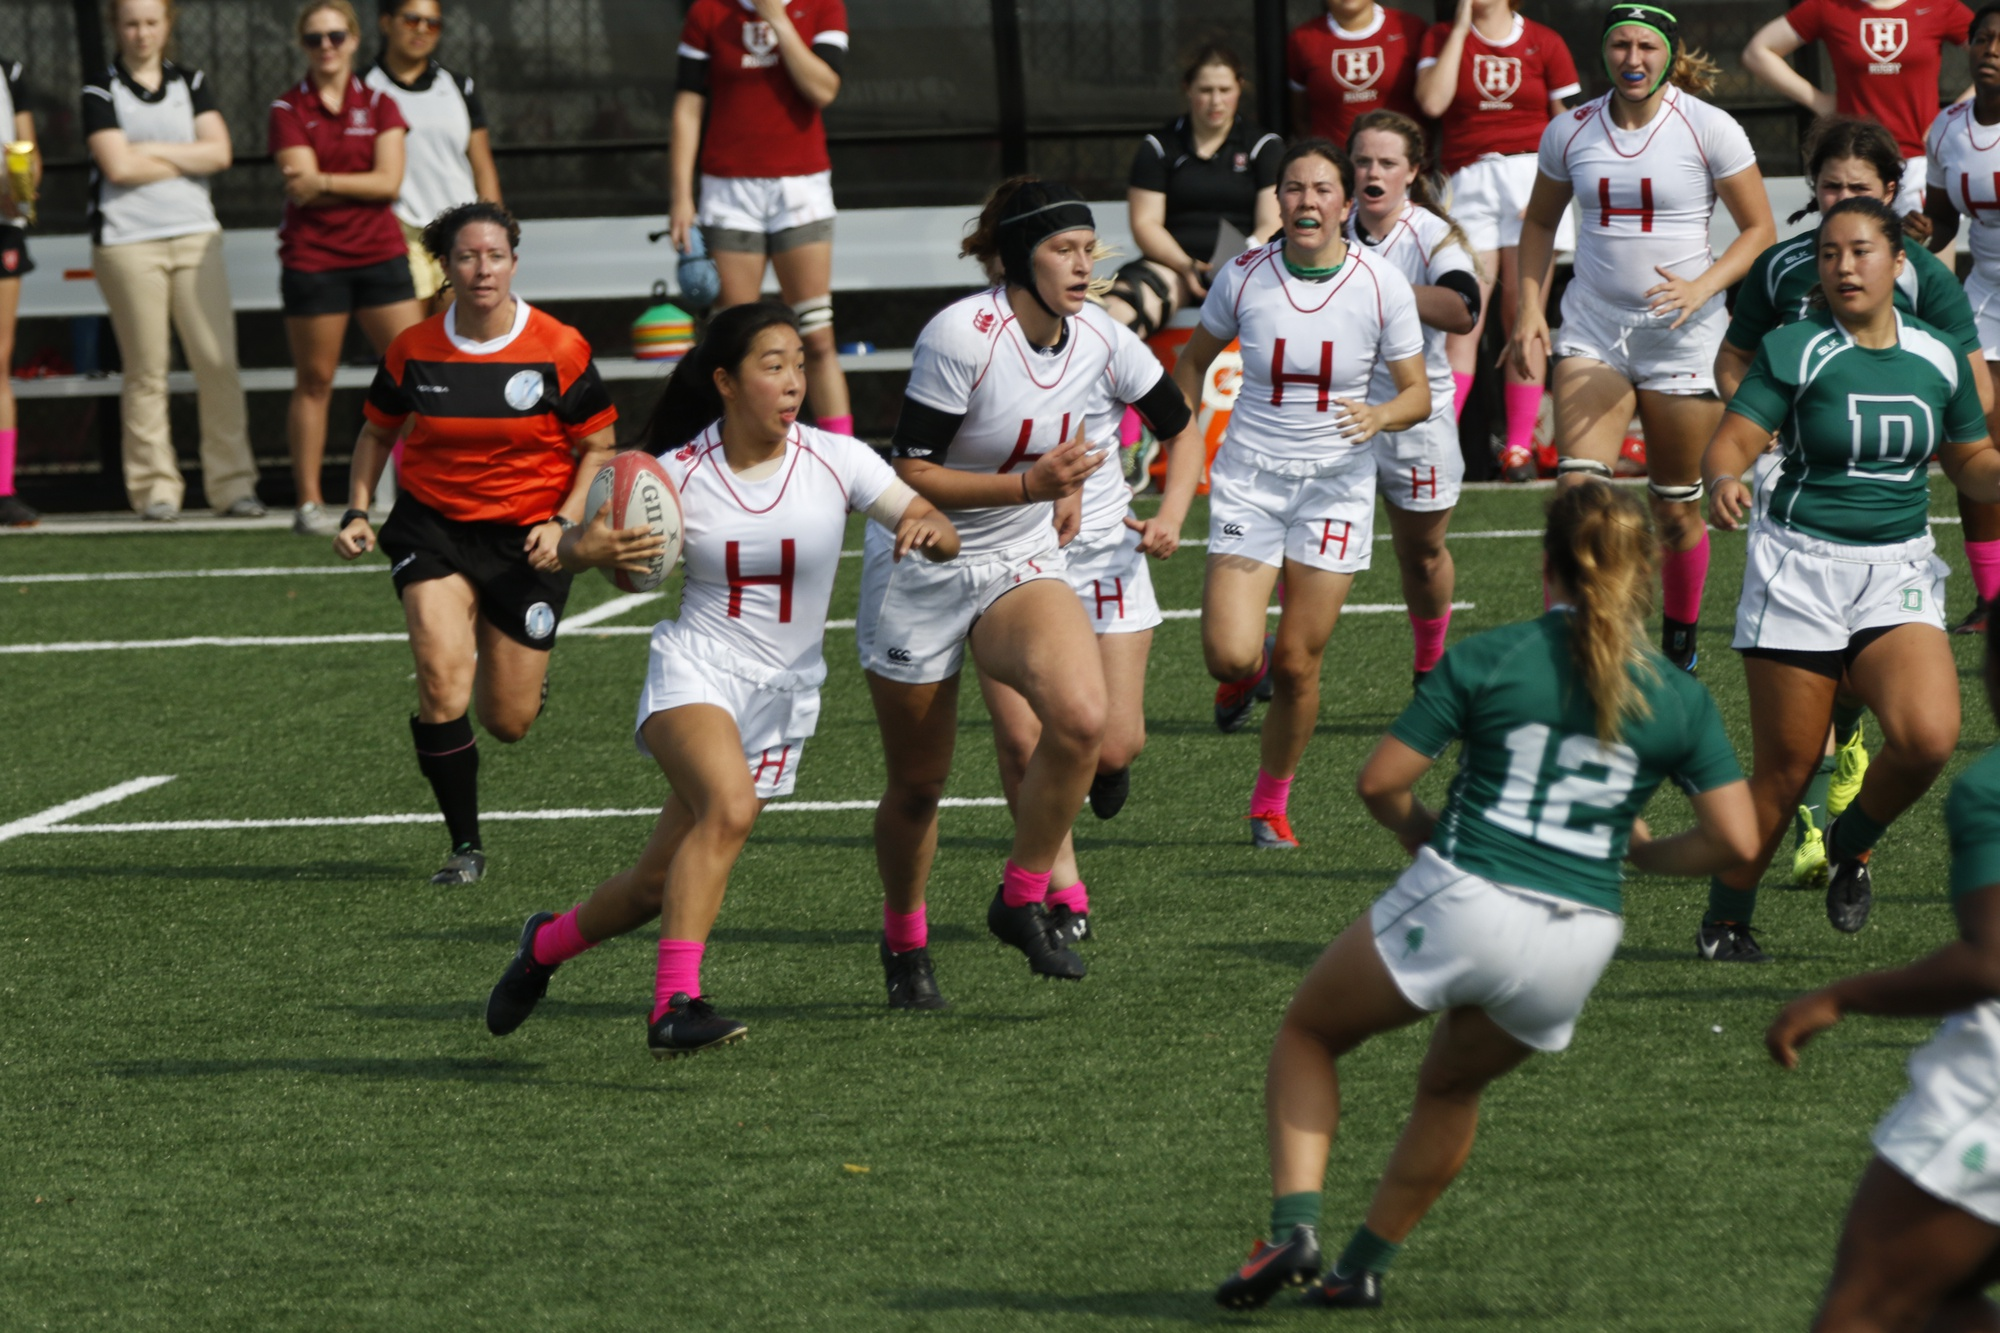 Harvard mounts an offensive attack against Dartmouth on Saturday in an attempt to respond to points the Big Green had made.